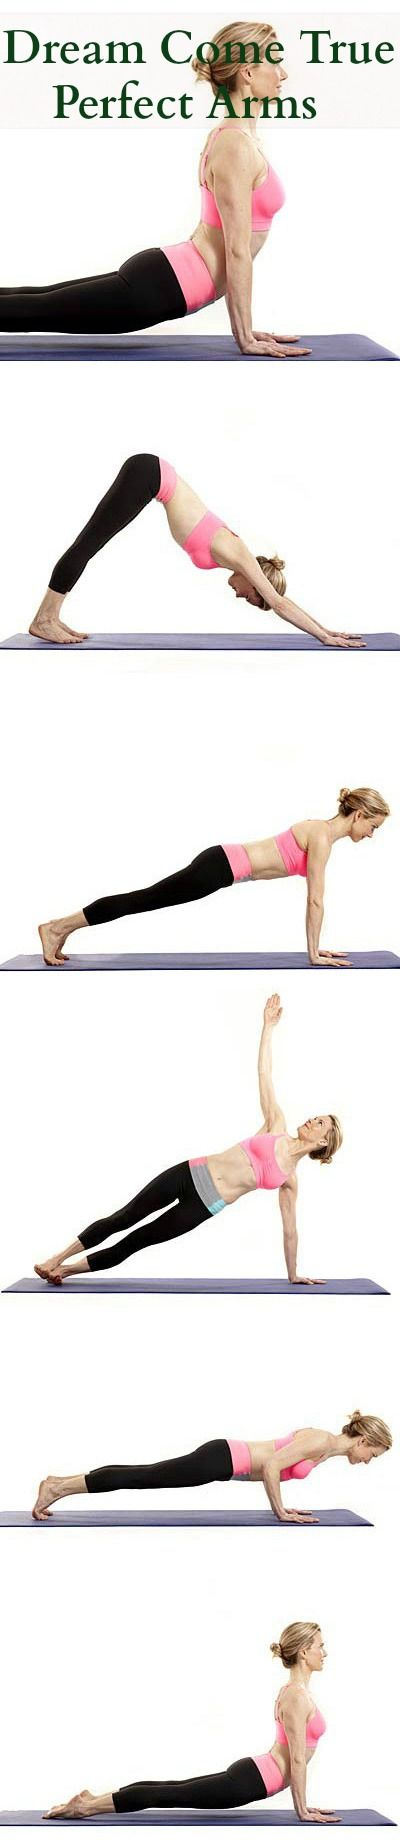 Dream Come True – Perfect Arms, Flat Belly, Toned Thighs and Legs With Yoga by stylecraze #Yoga #Arms #Thighs #Legs #Flat_Belly